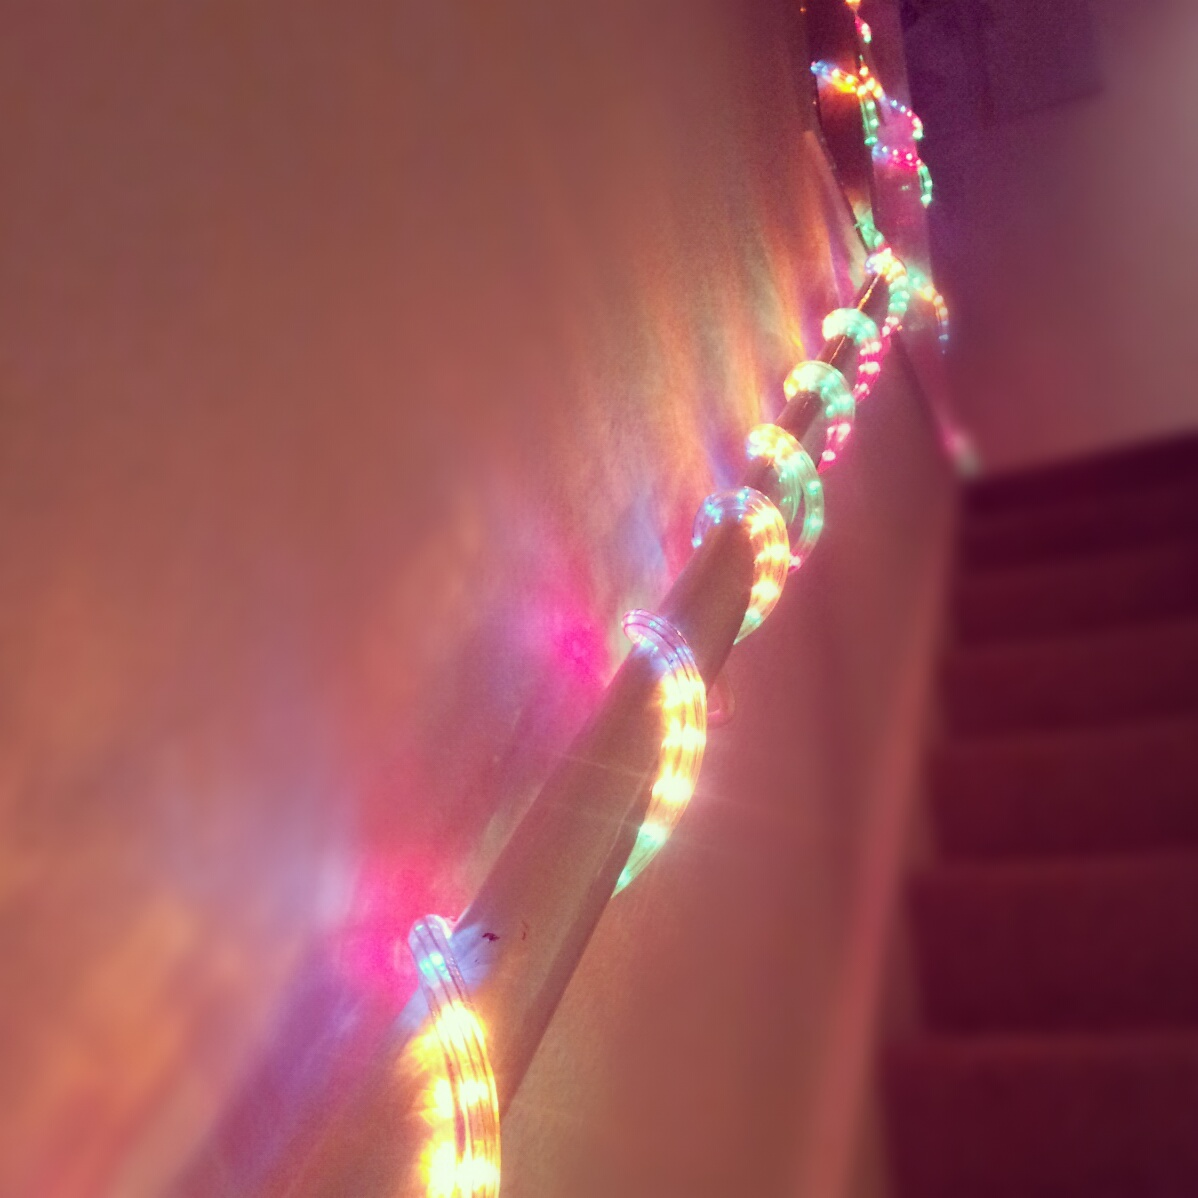 A party isn't complete without disco lights.